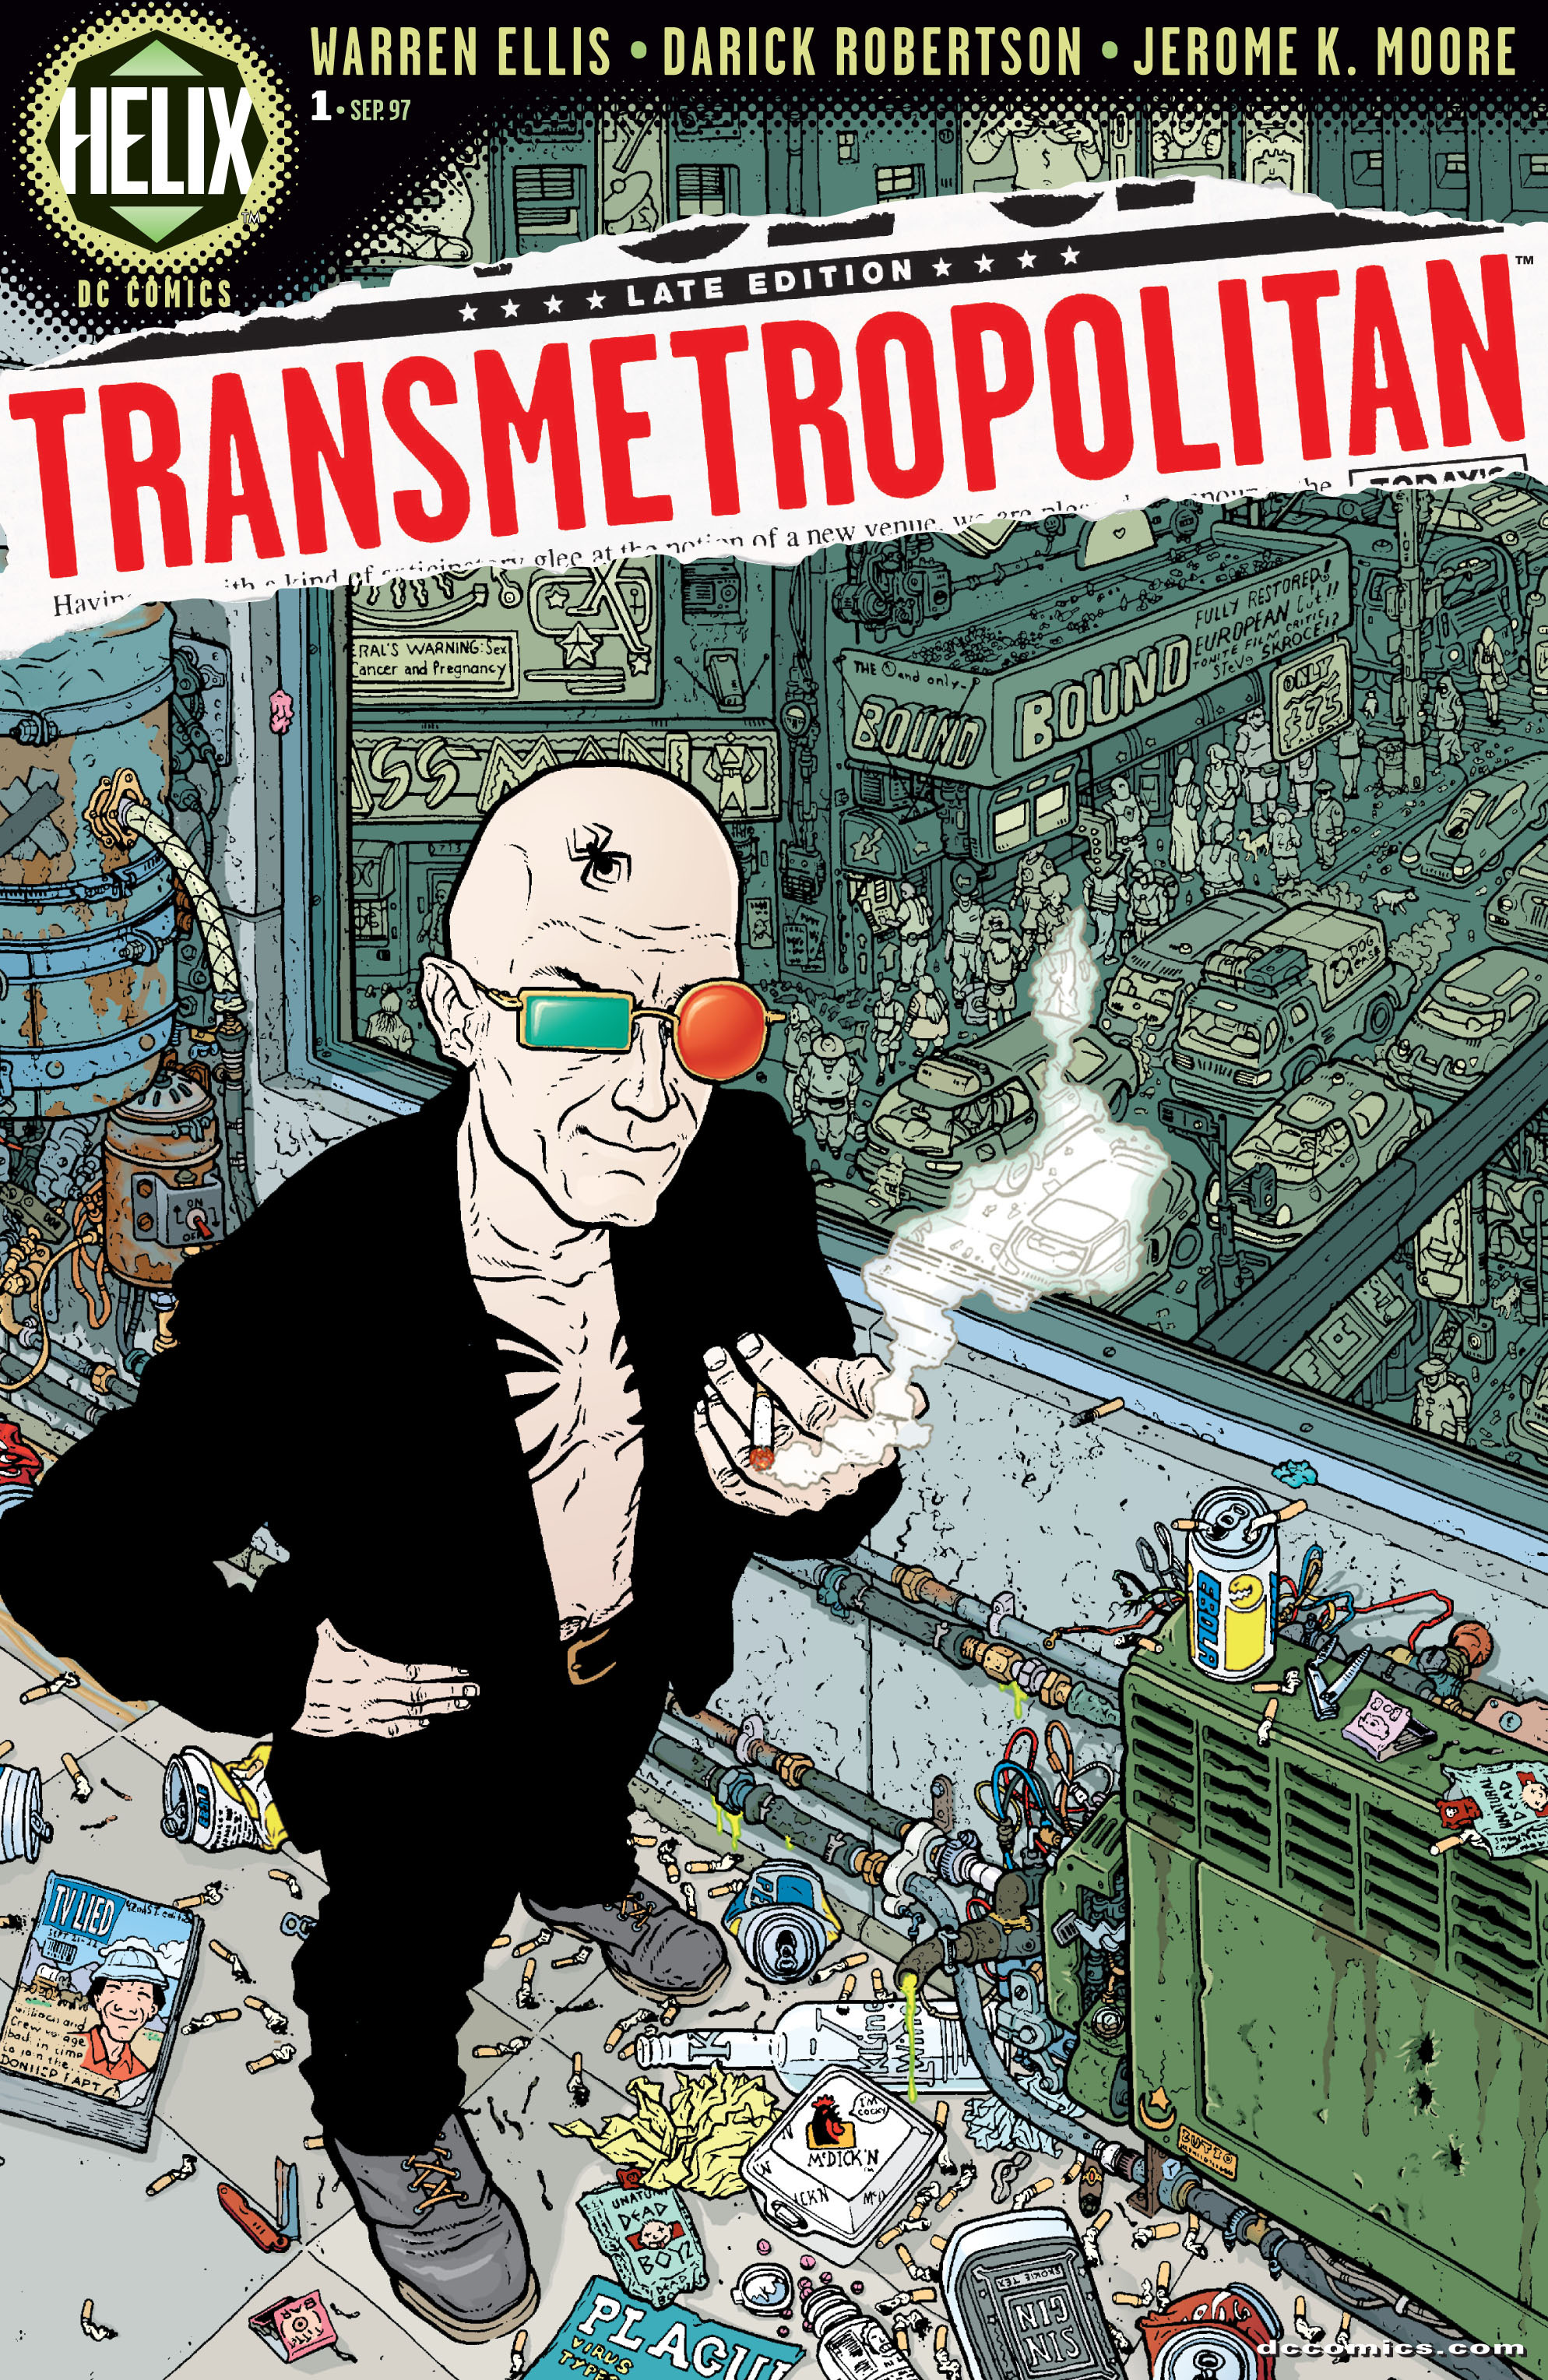 Read online Transmetropolitan comic -  Issue #1 - 1